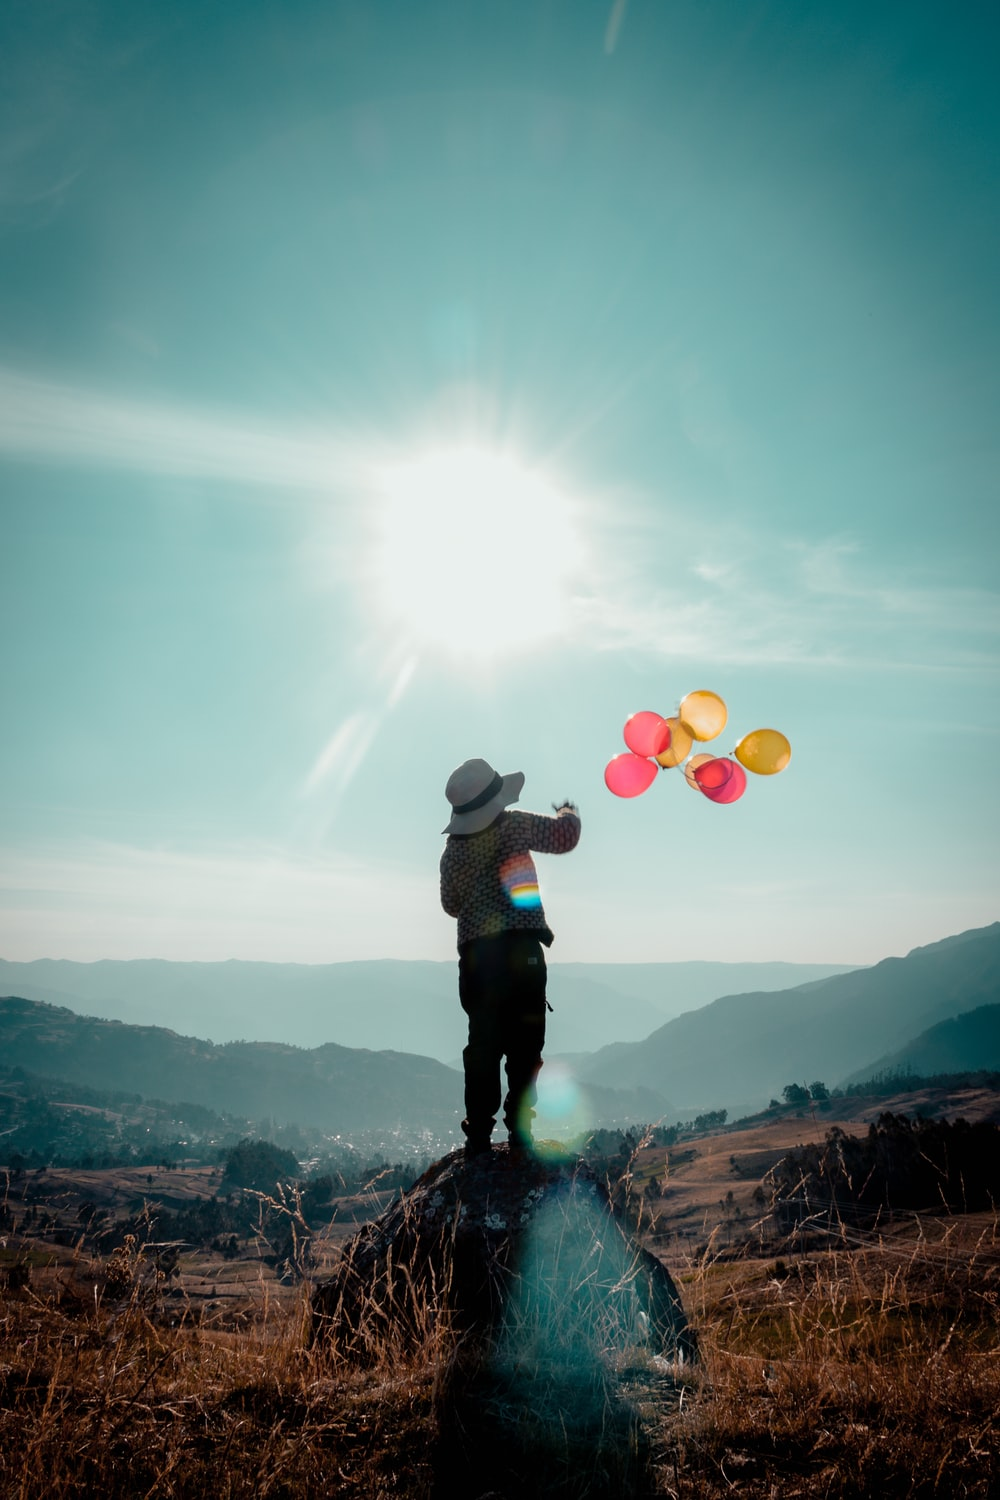 balloons flying near person standing on rock